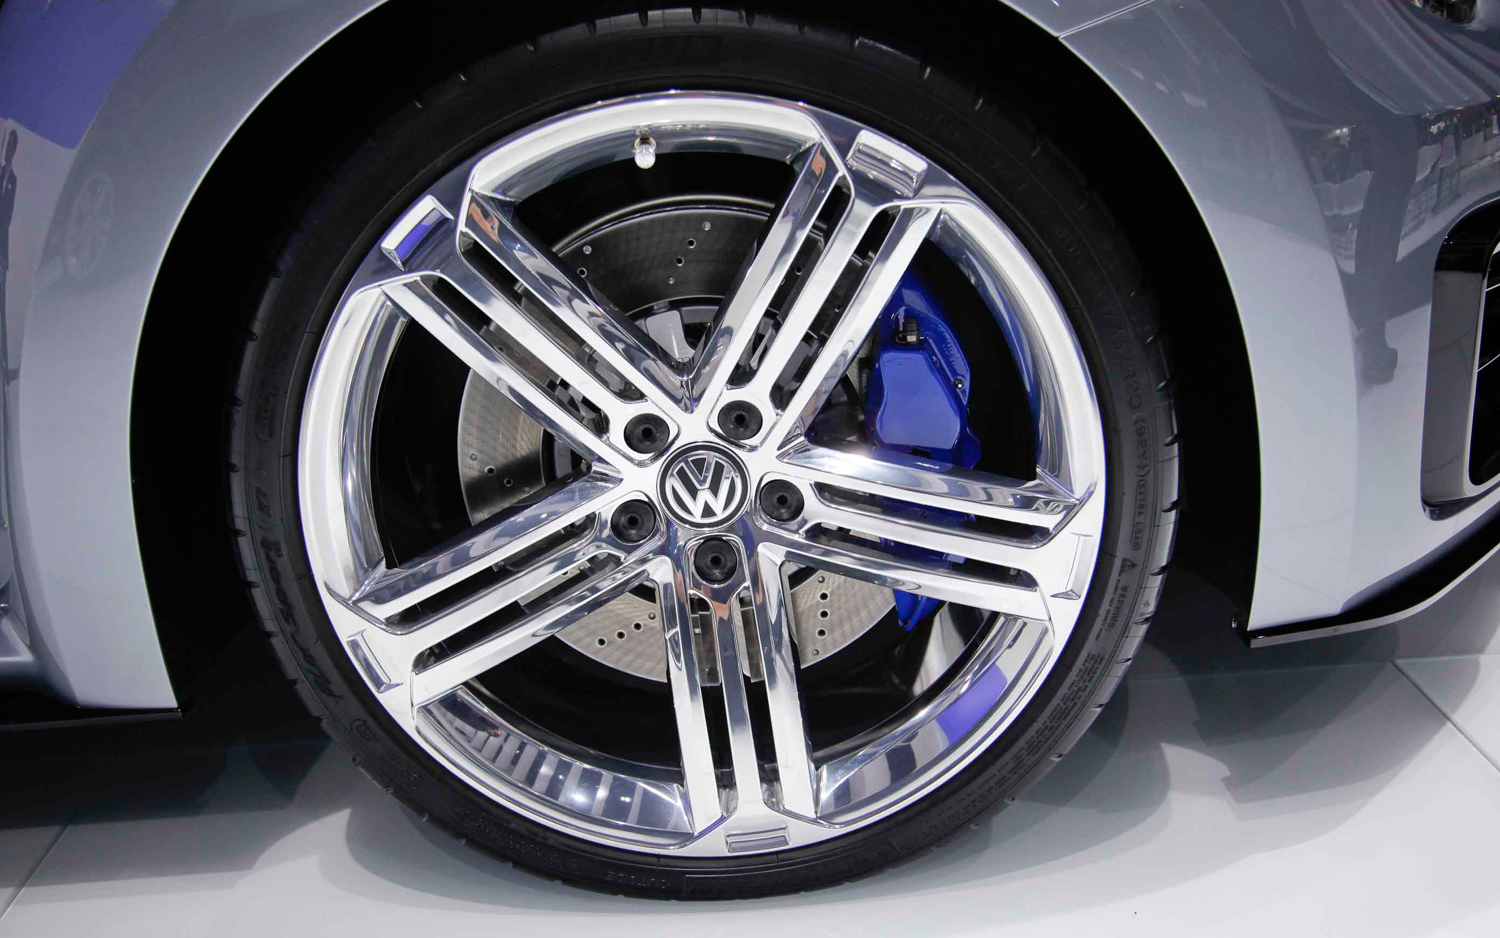 Volkswagen Beetle wheels #3